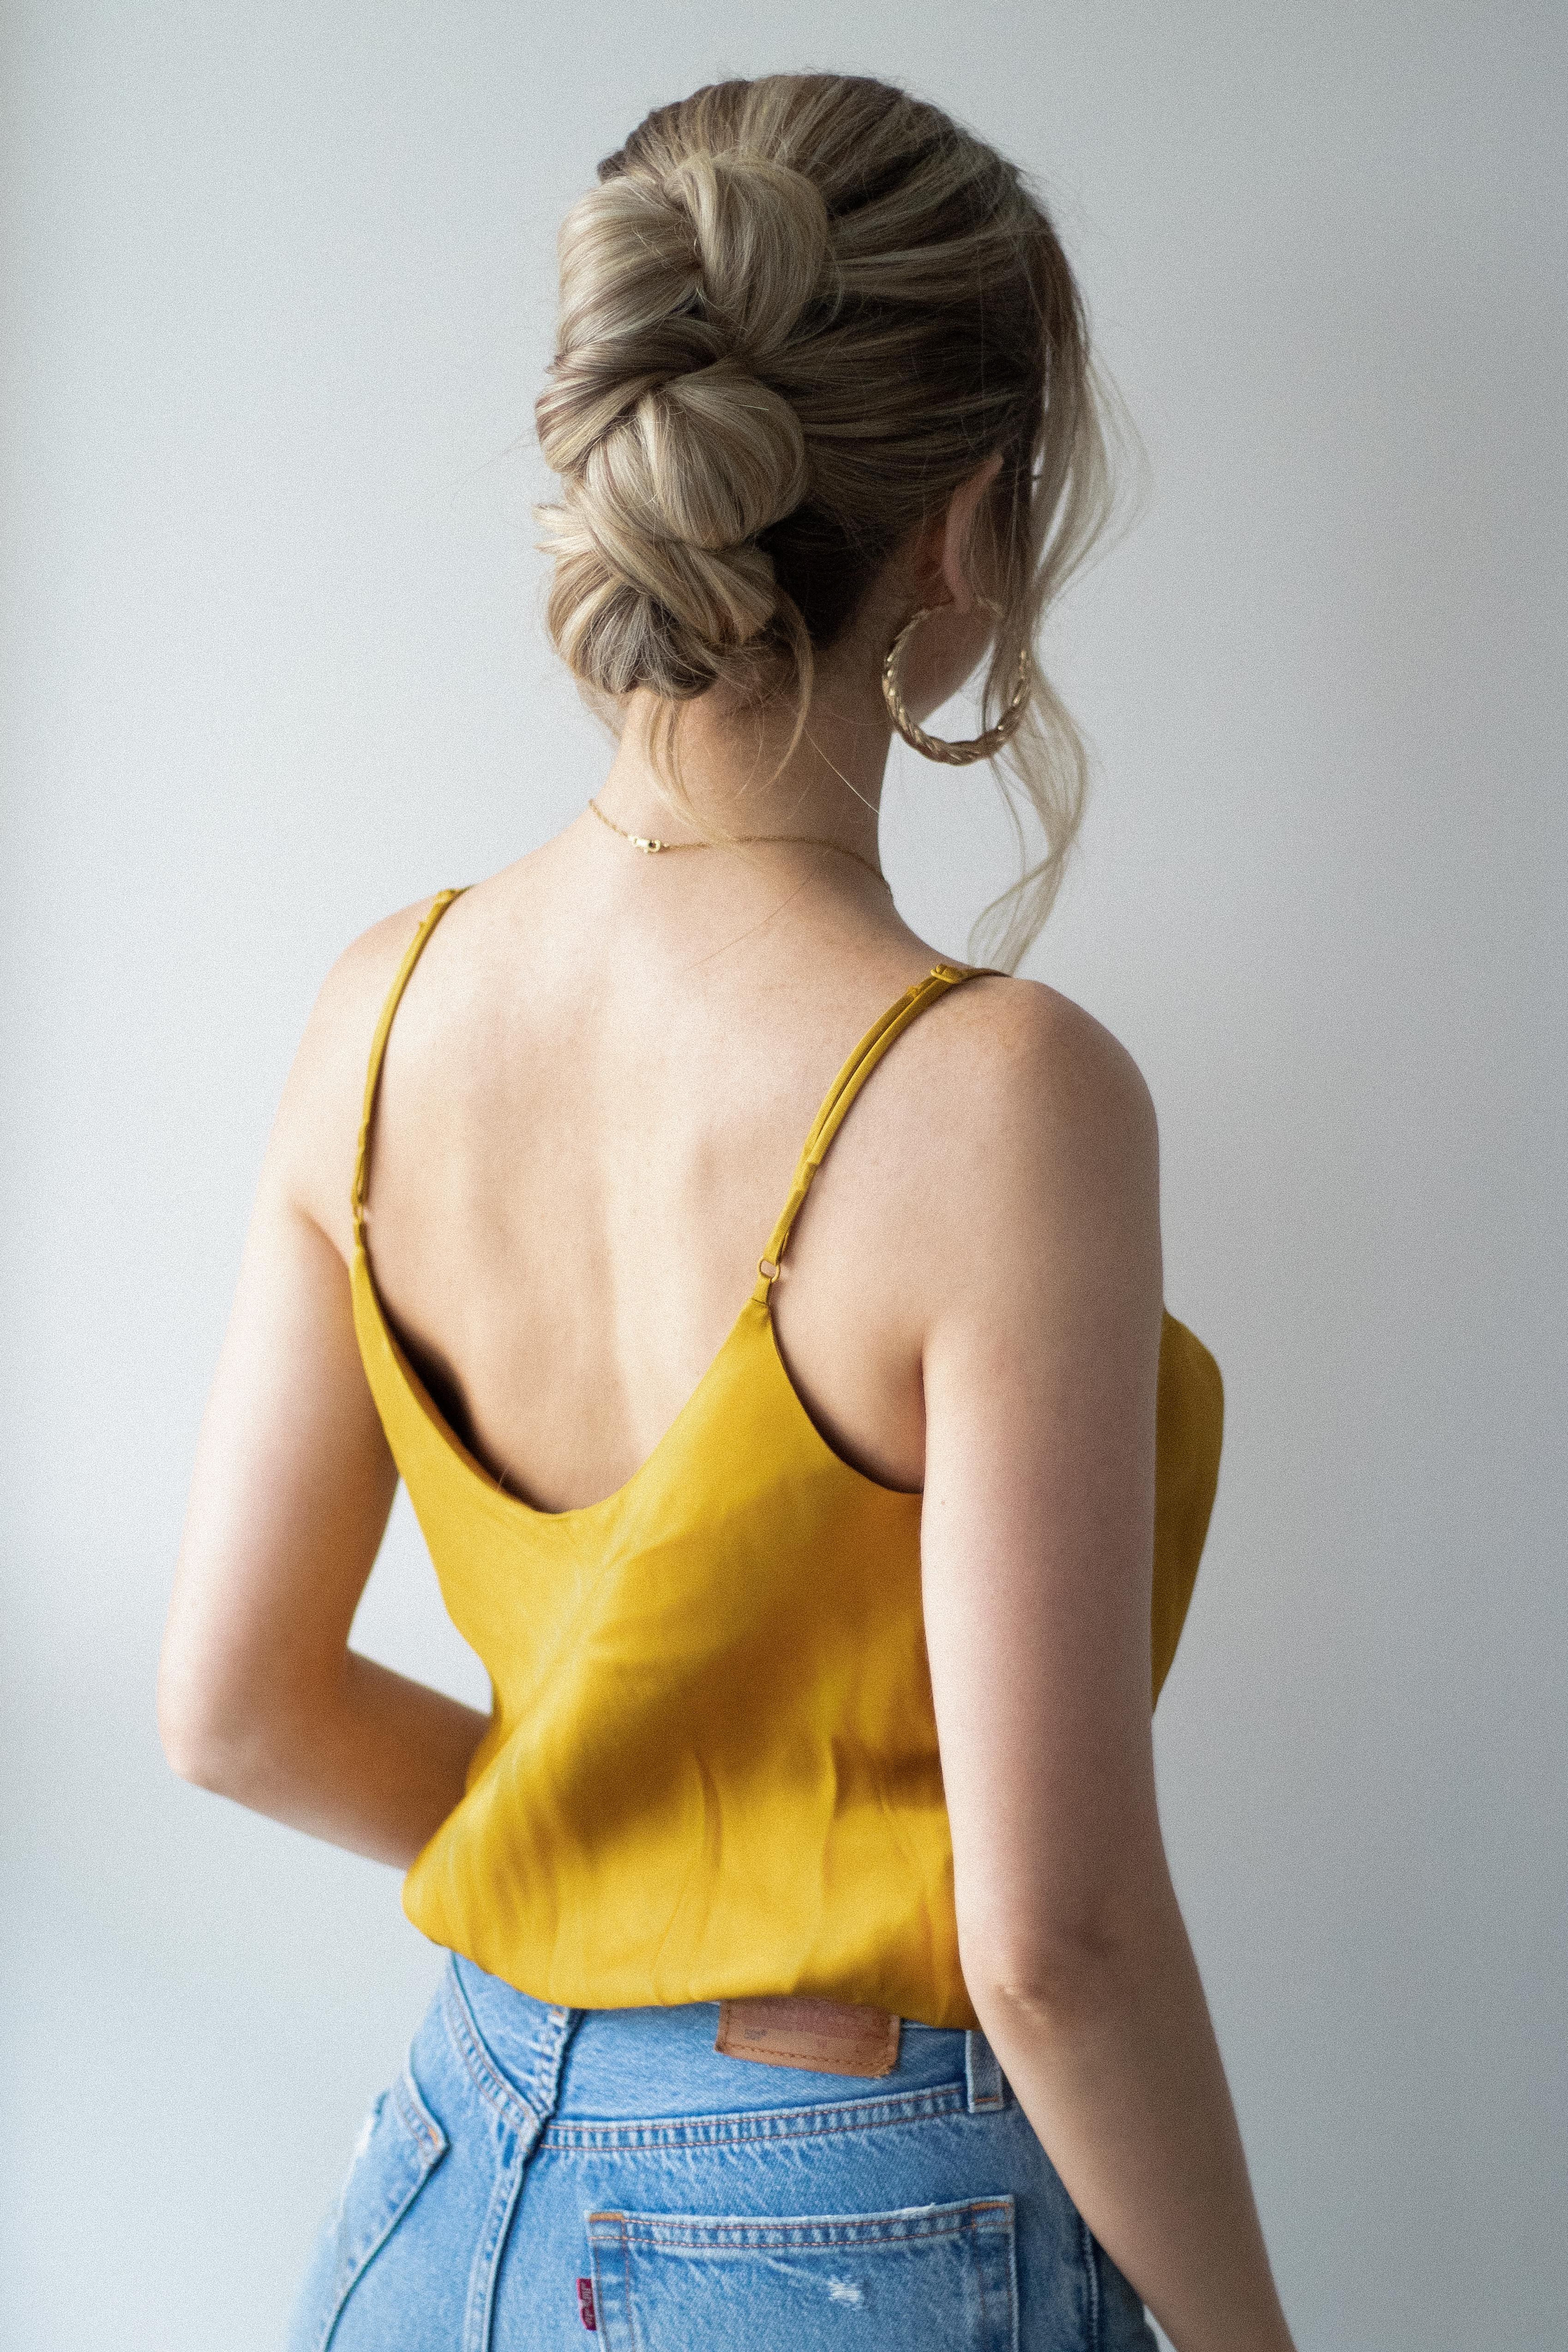 EASY Knotted Braid Updo Hair Tutorial | www.alexgaboury.com